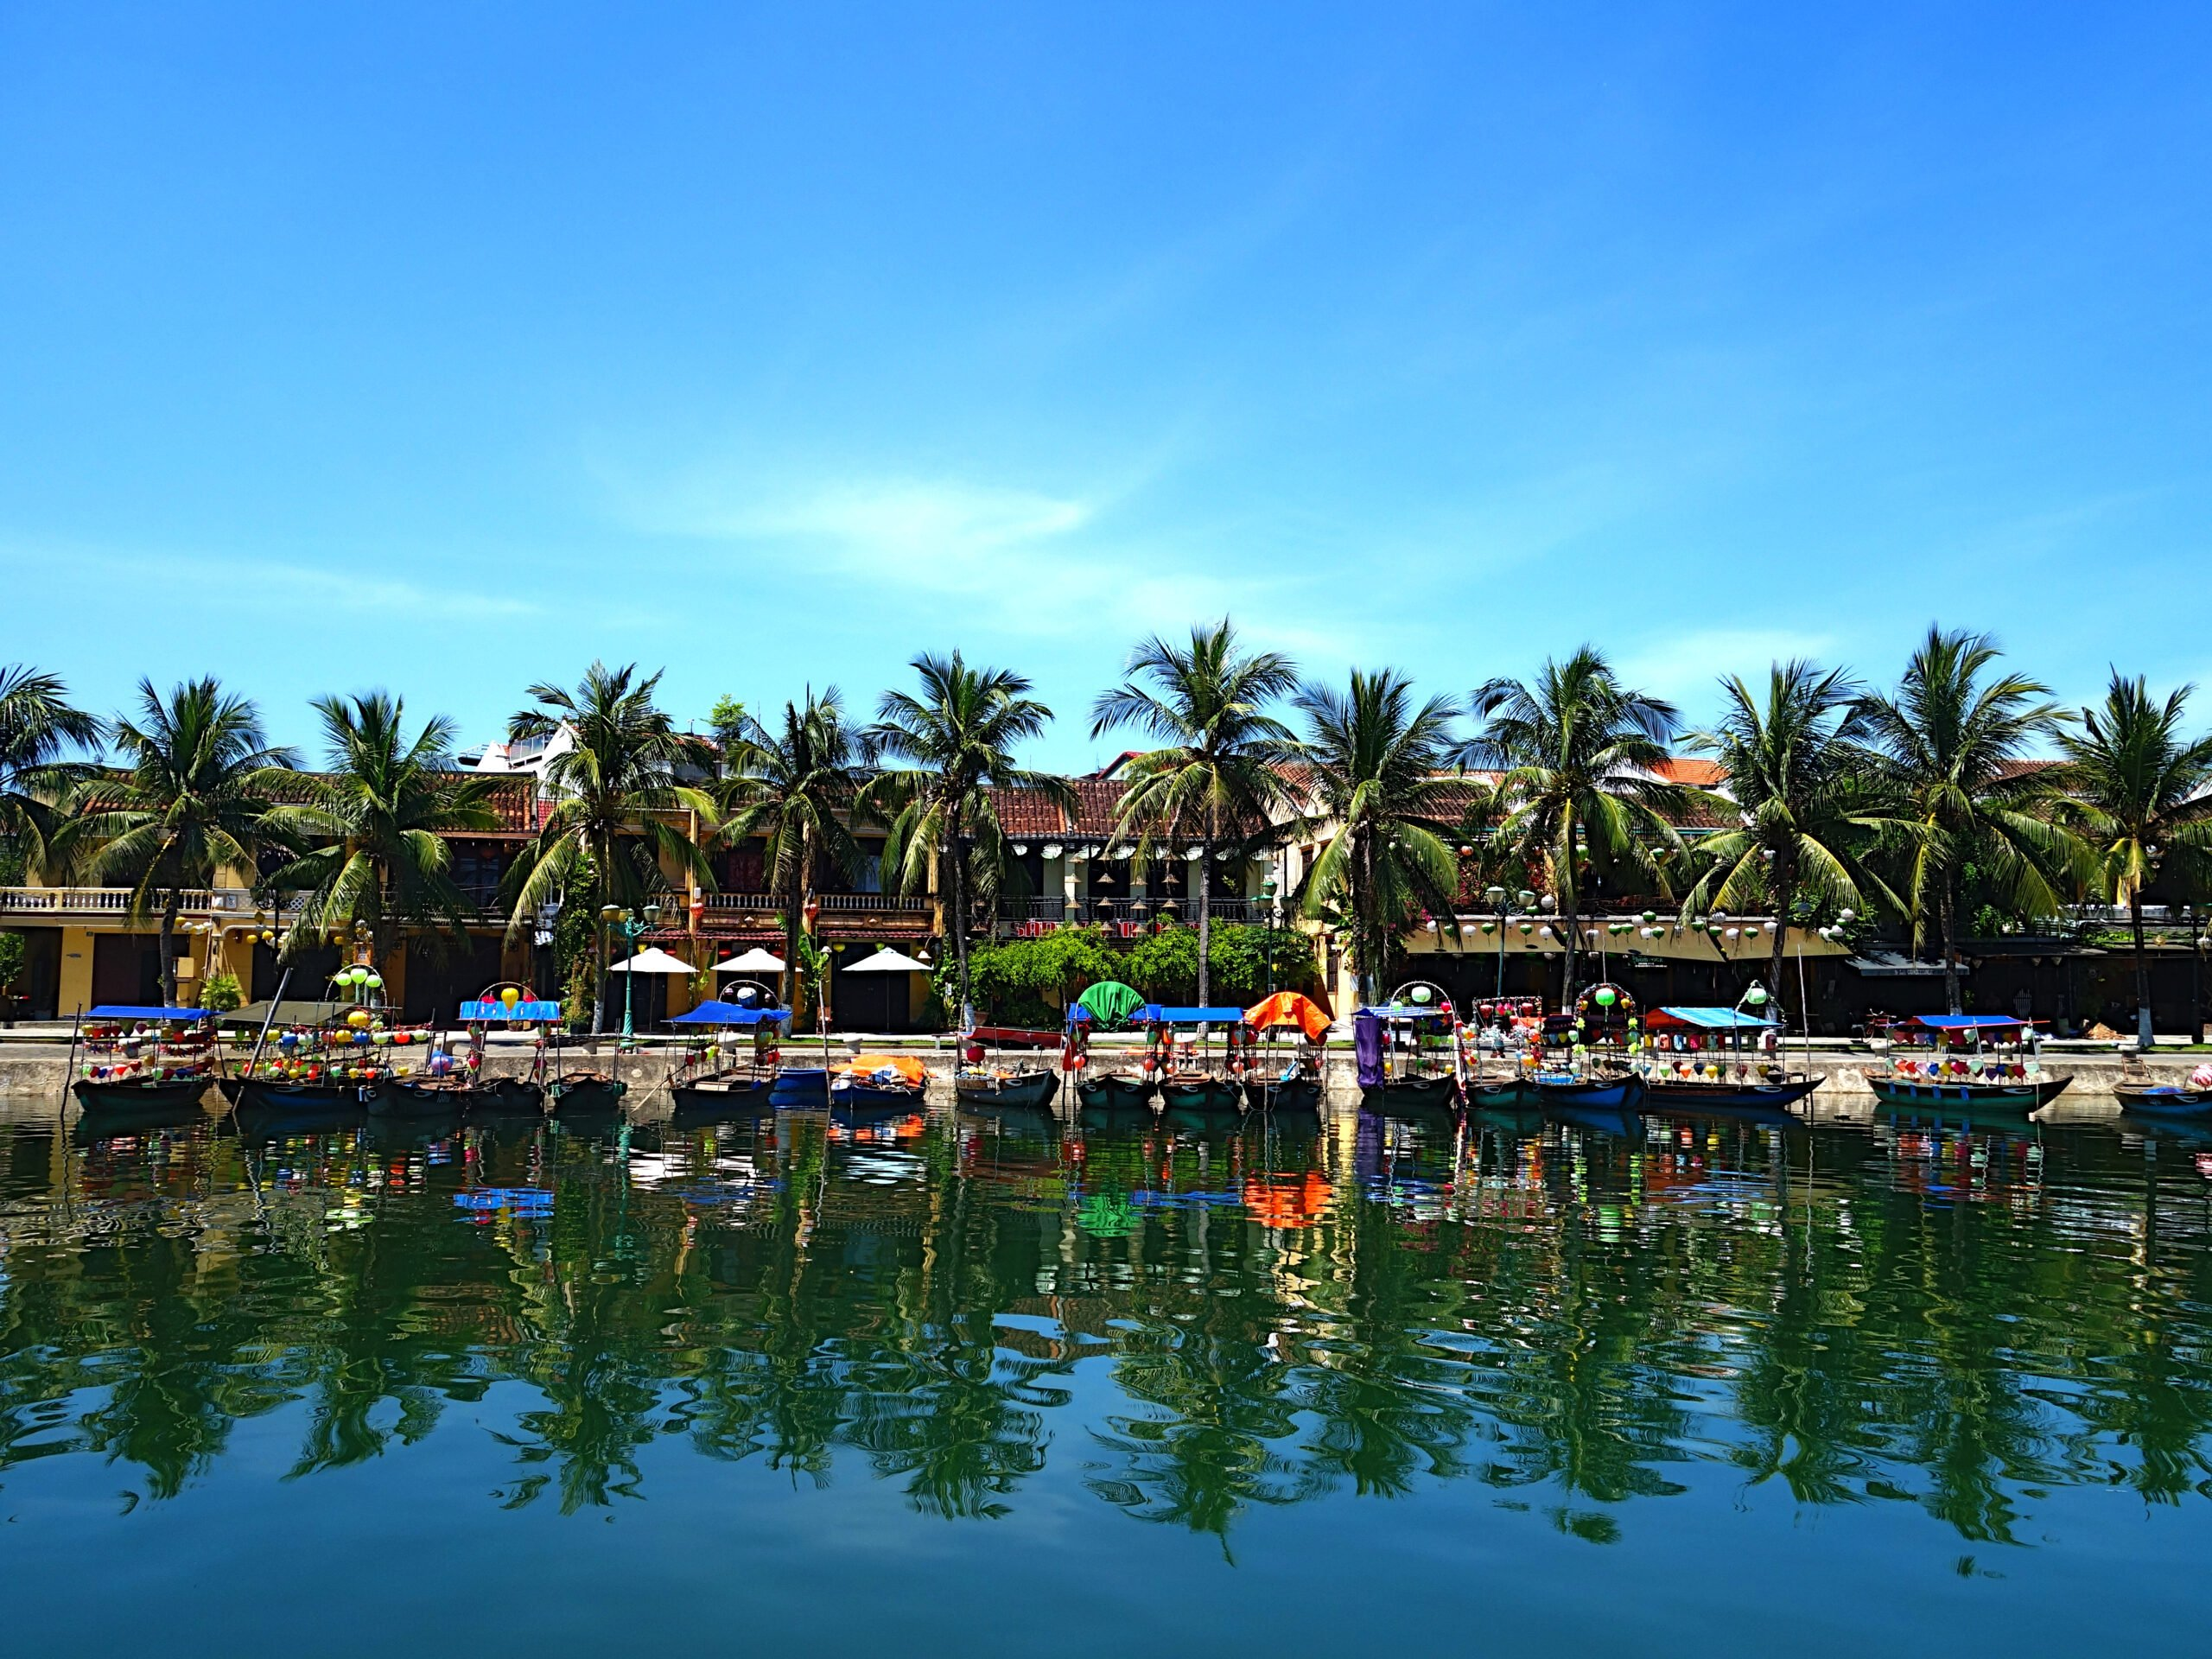 Learn More About Vietnam's Traditions On The Wonders Of Vietnam, Cambodia & Thailand 15 Day Package Tour